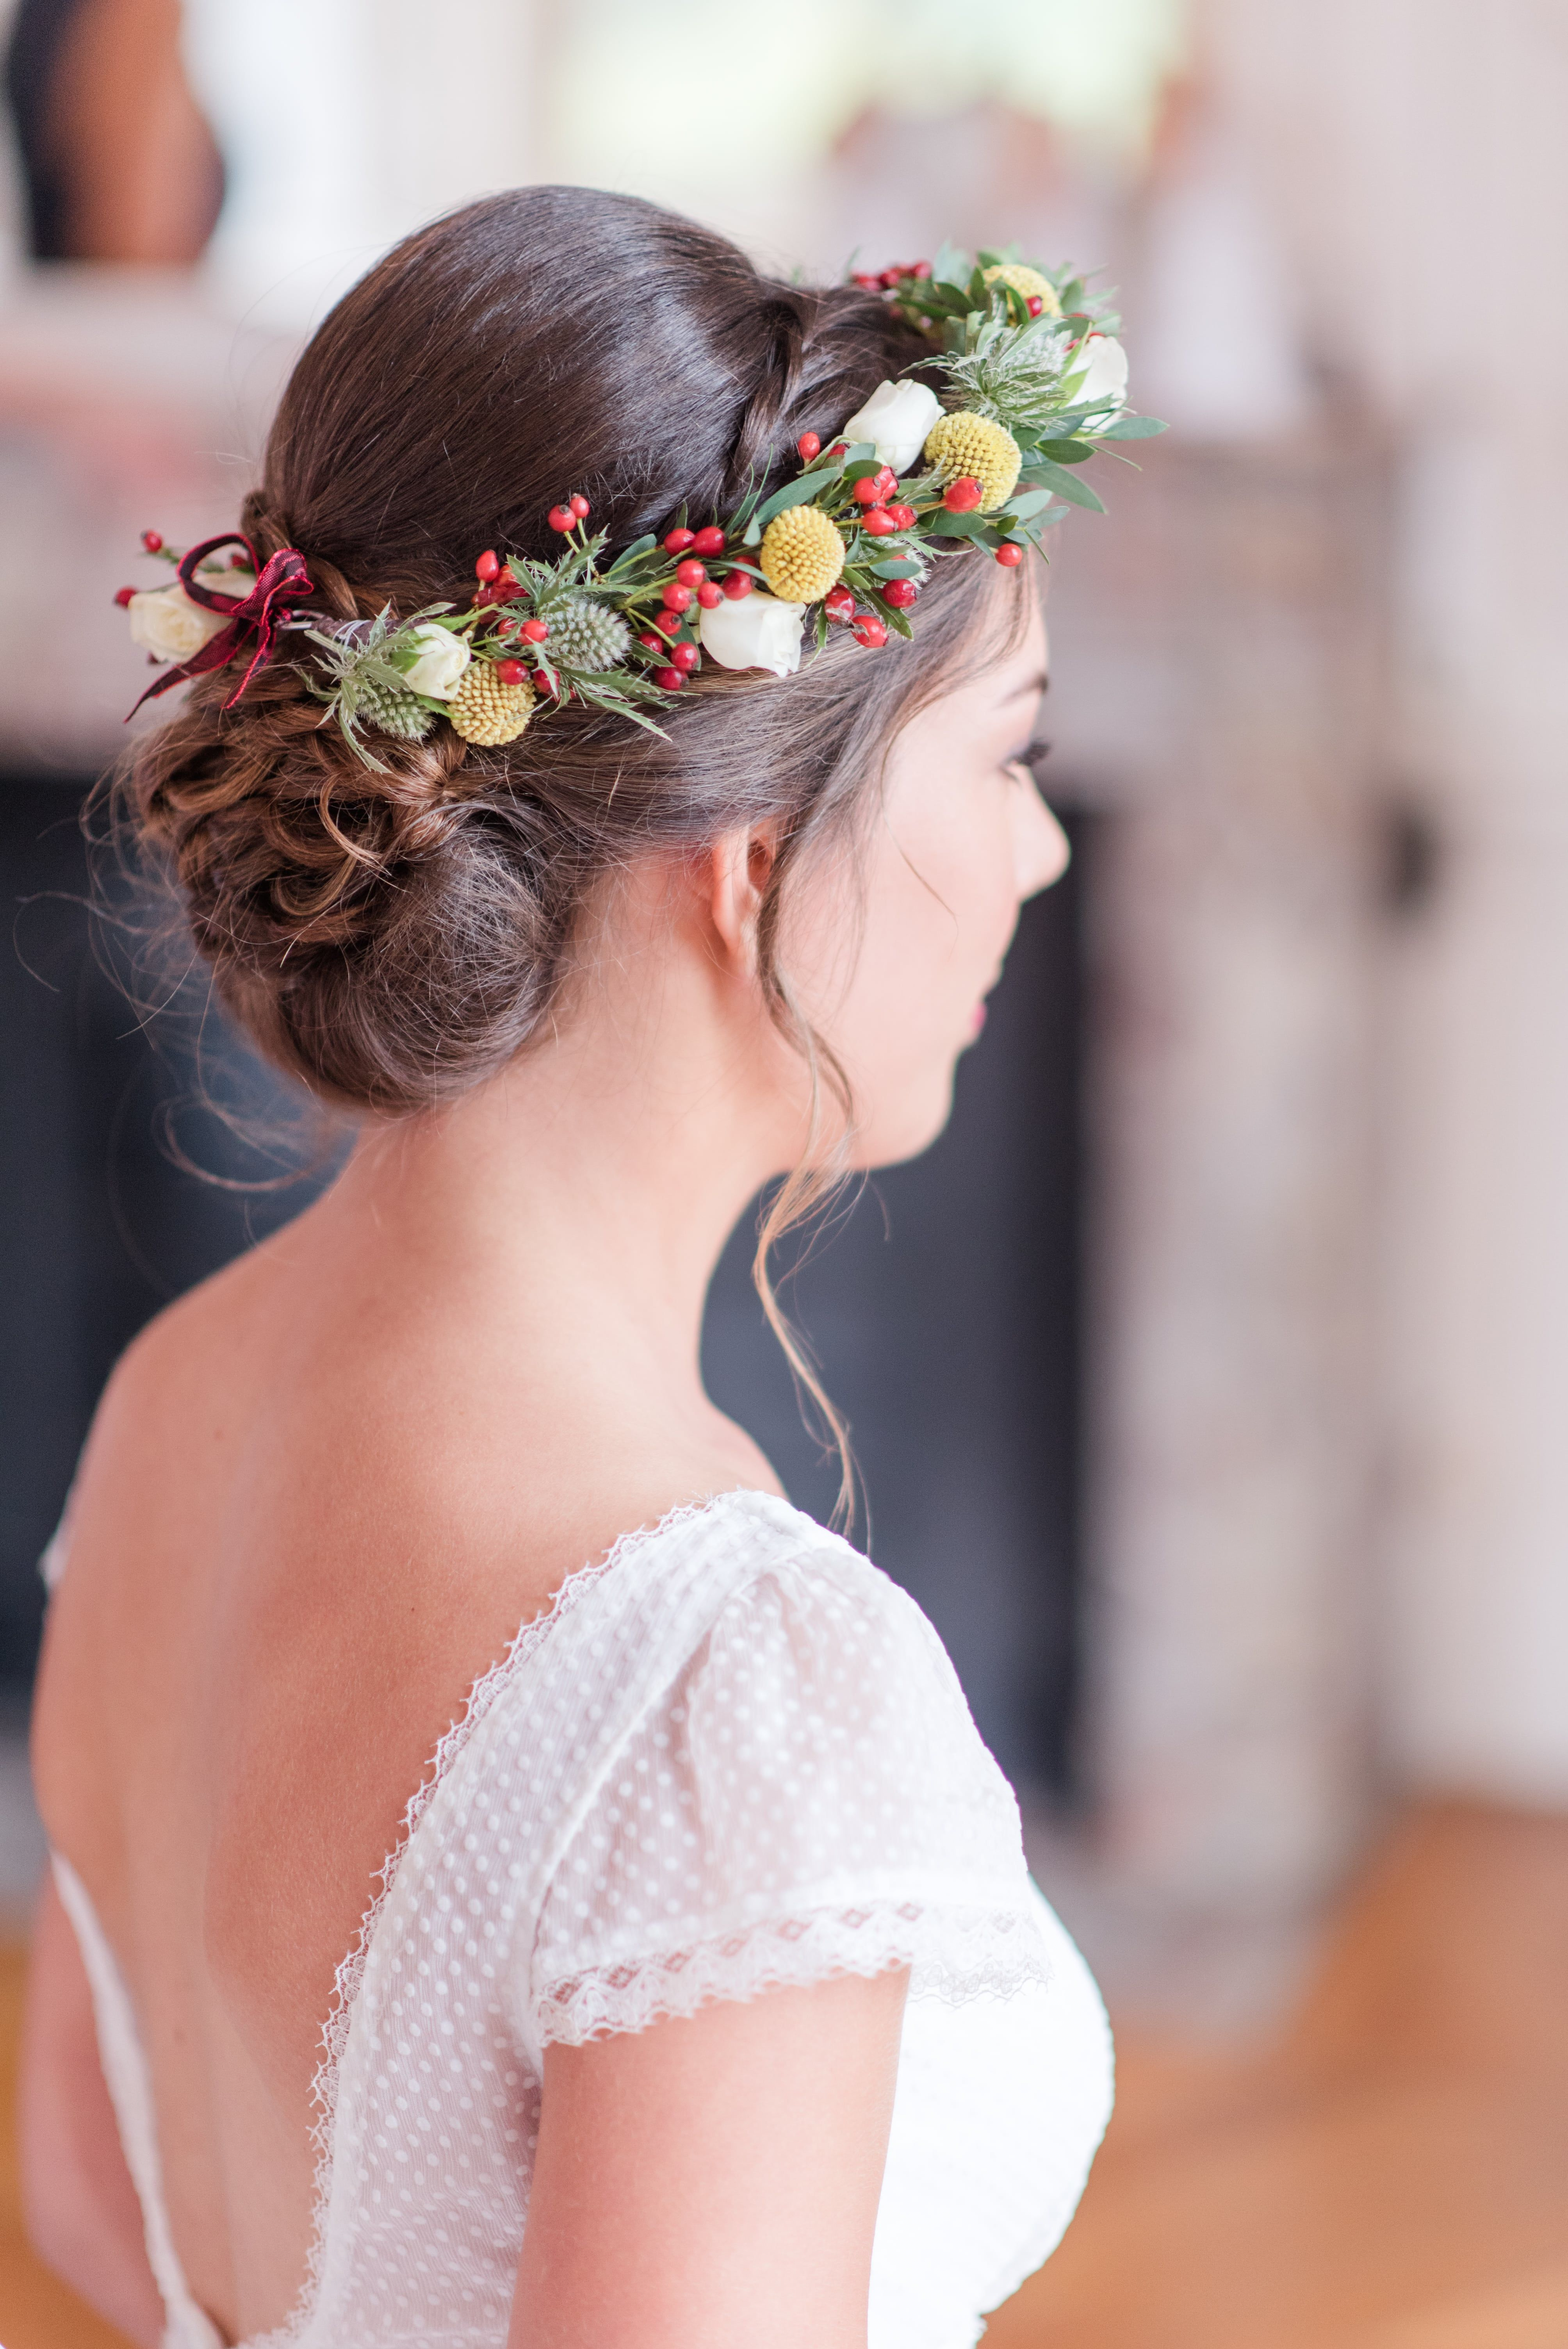 27+ Coiffeur mariage yvelines inspiration